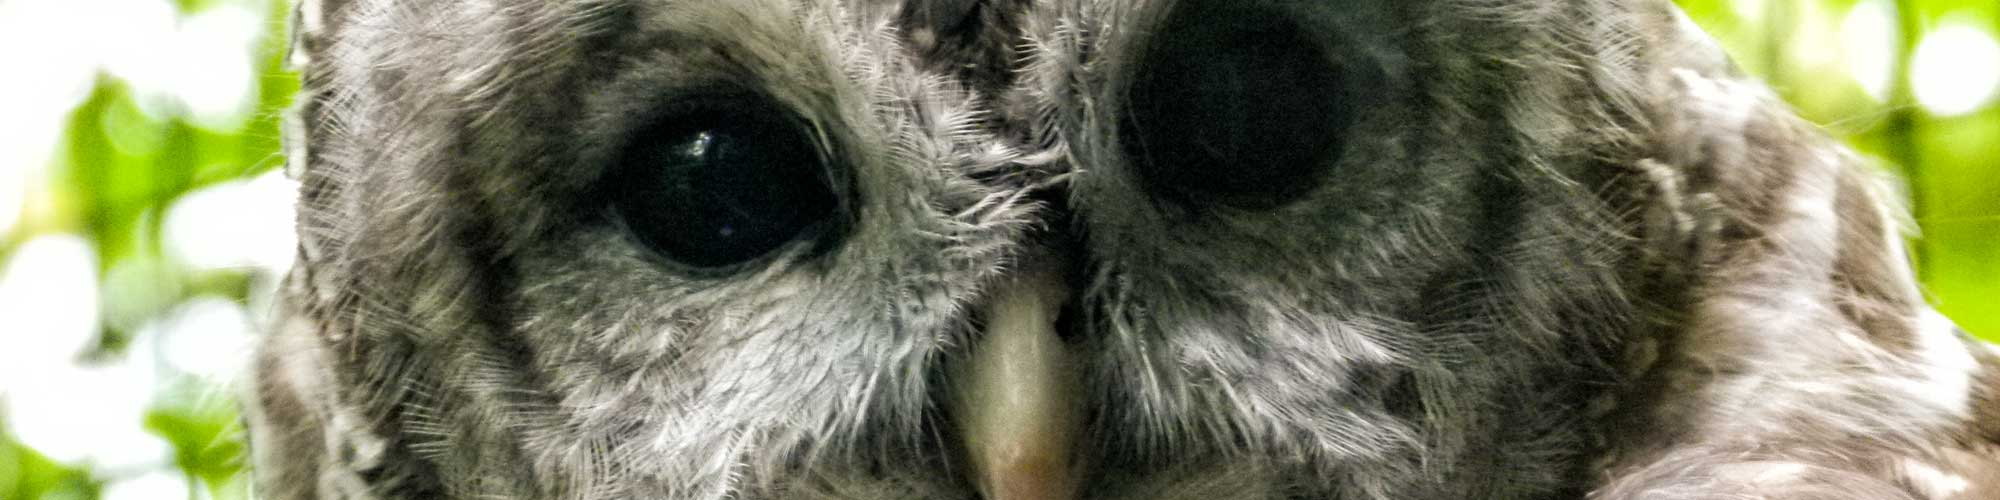 Barred Owl | Squam Lakes Natural Science Center